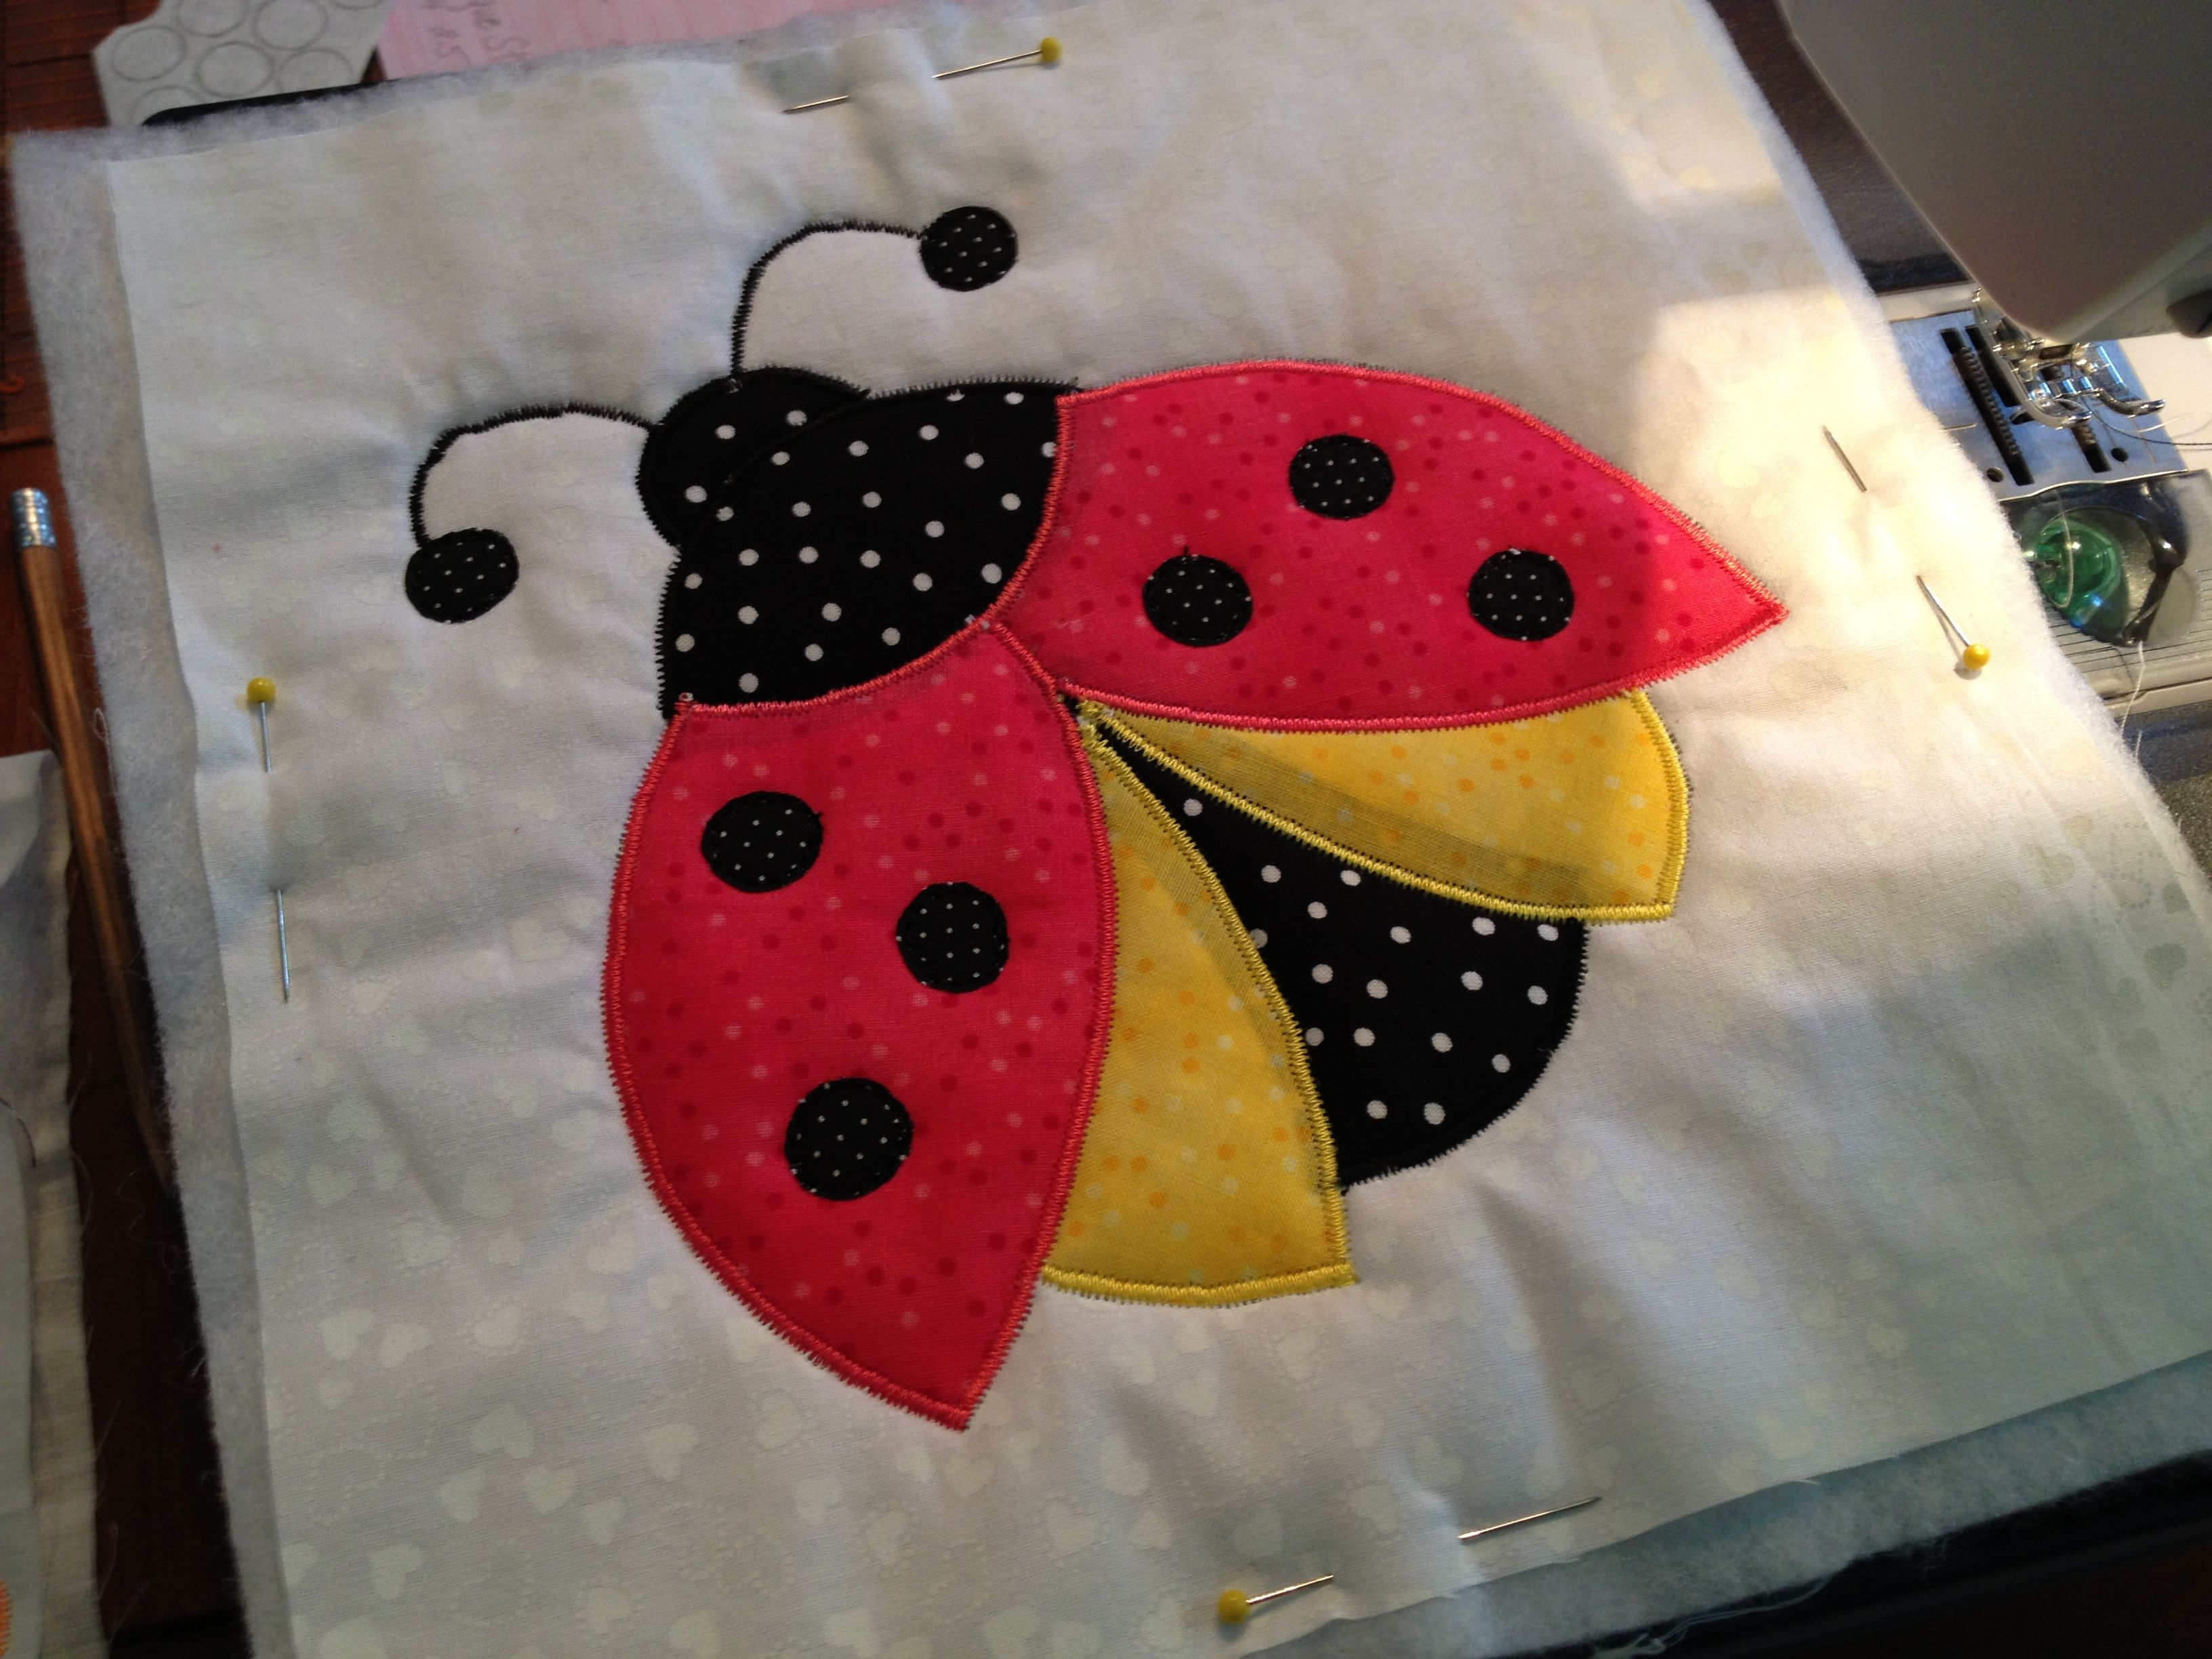 Ladybug applique block for a quilt as you go quilt project. my